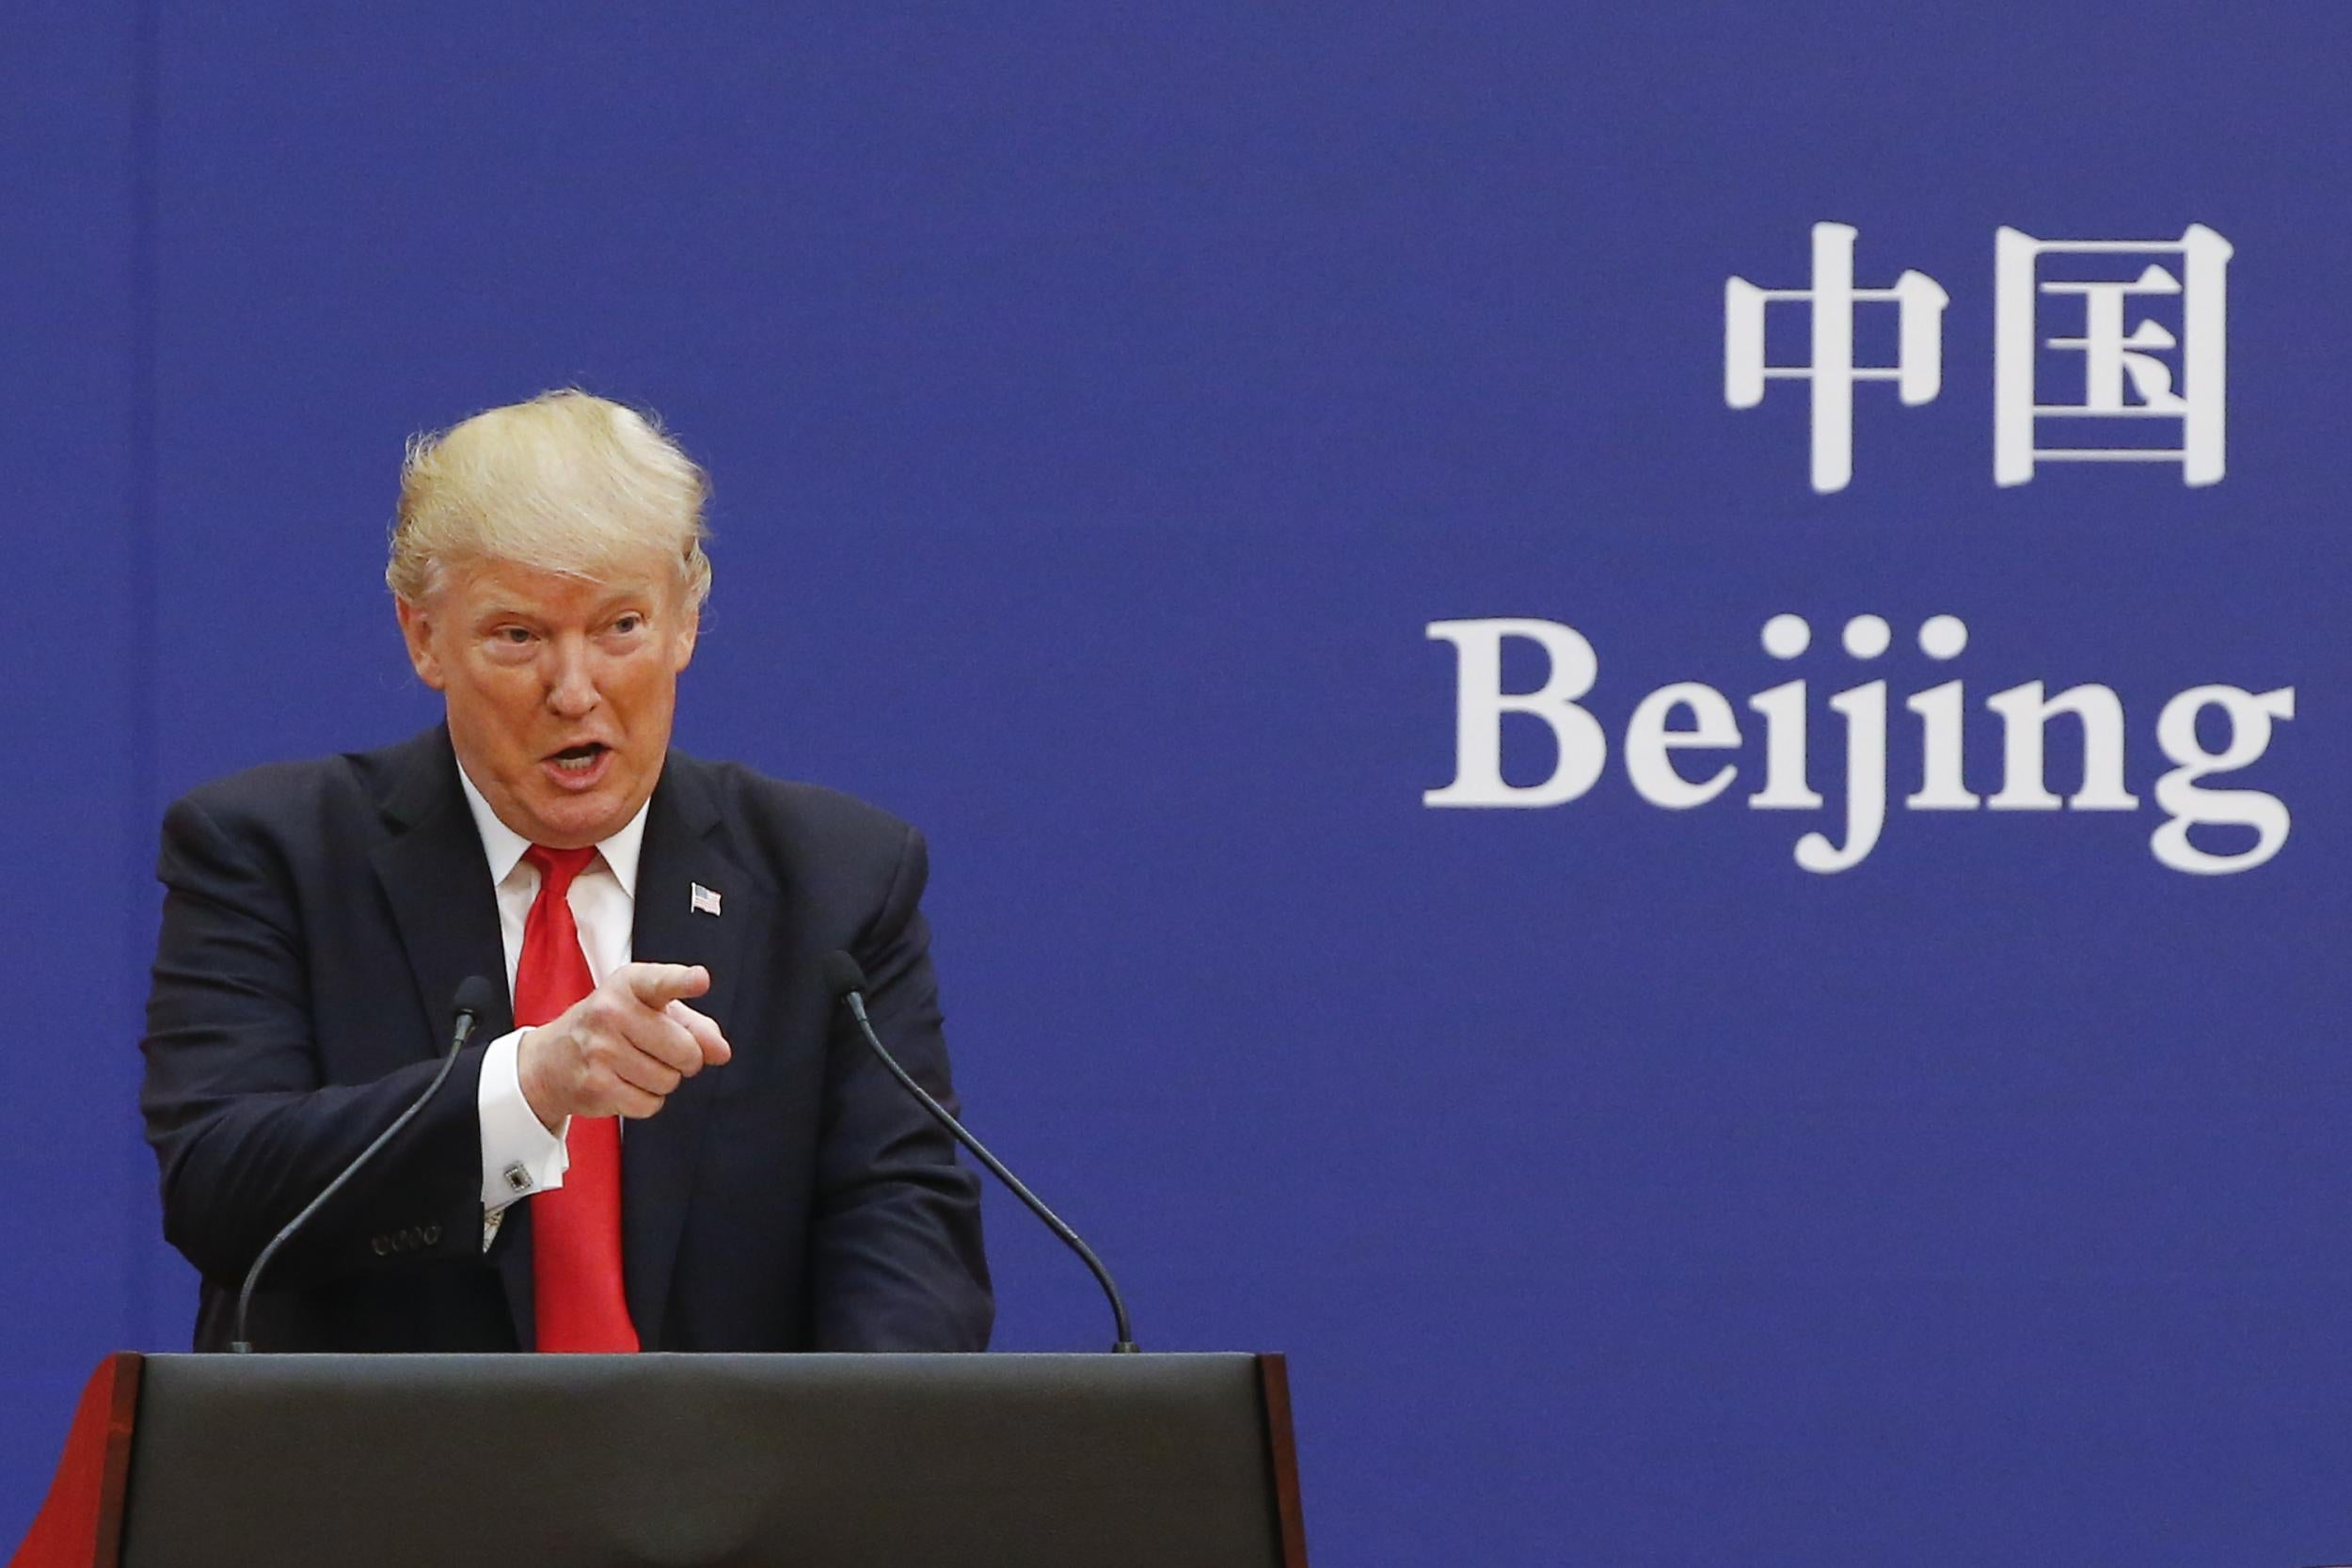 China strongly condemns US blacklisting of companies as trade tensions soar